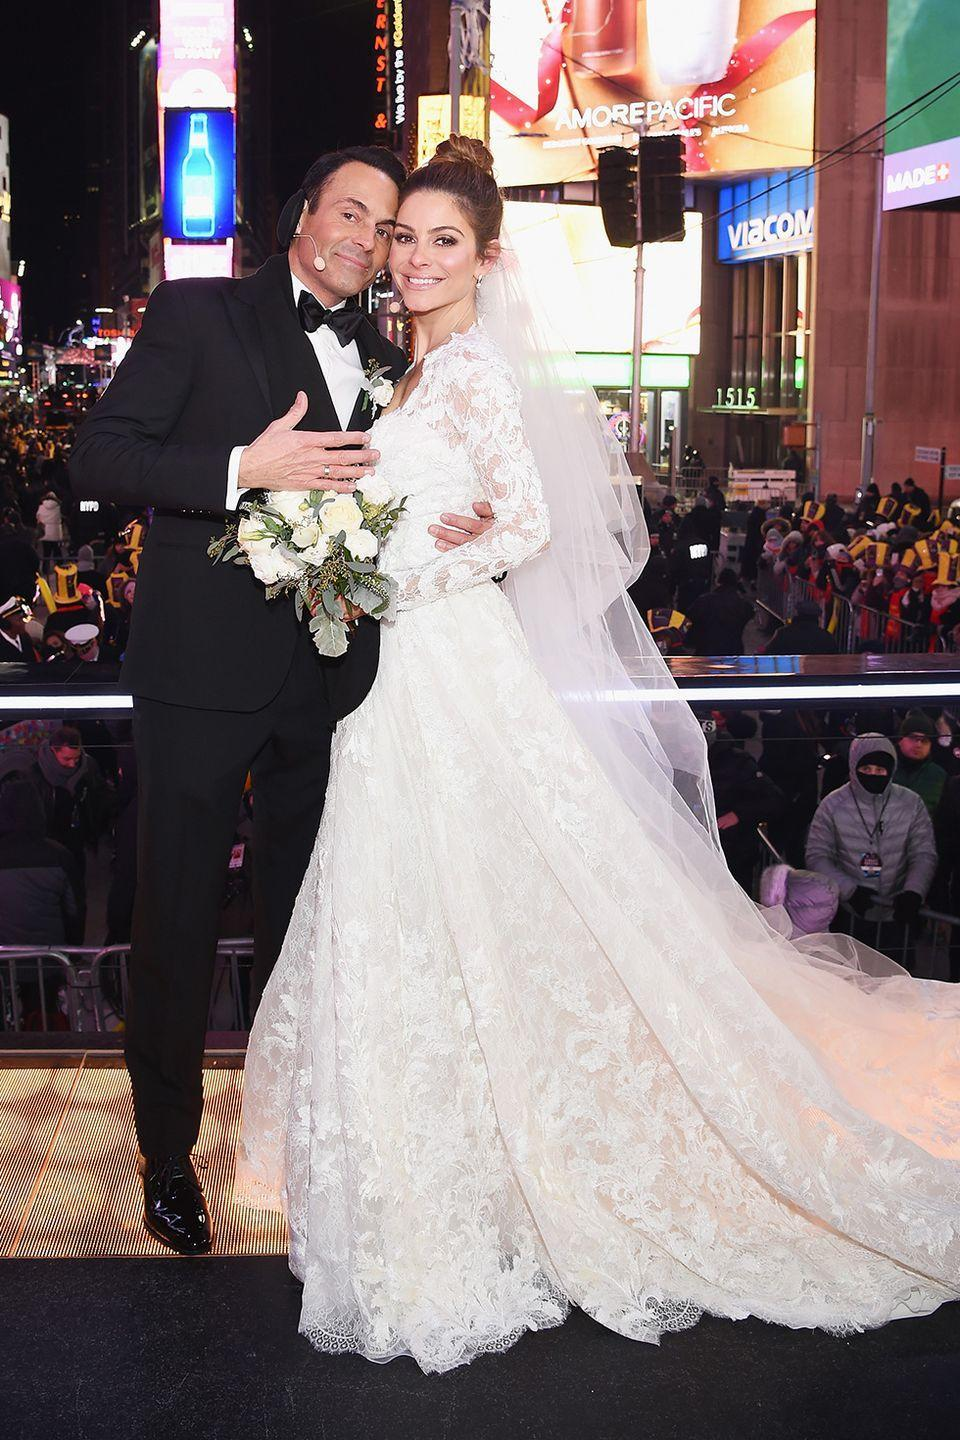 """<p>Maria Menounos got married to her longtime beau Kevin Undergaro on New Year's Eve in a surprise ceremony in Times Square! Her long-sleeved <span class=""""redactor-unlink"""">Atelier Pronovias mermaid gown</span> was classically chic (and hopefully the long sleeves kept her warm).</p>"""